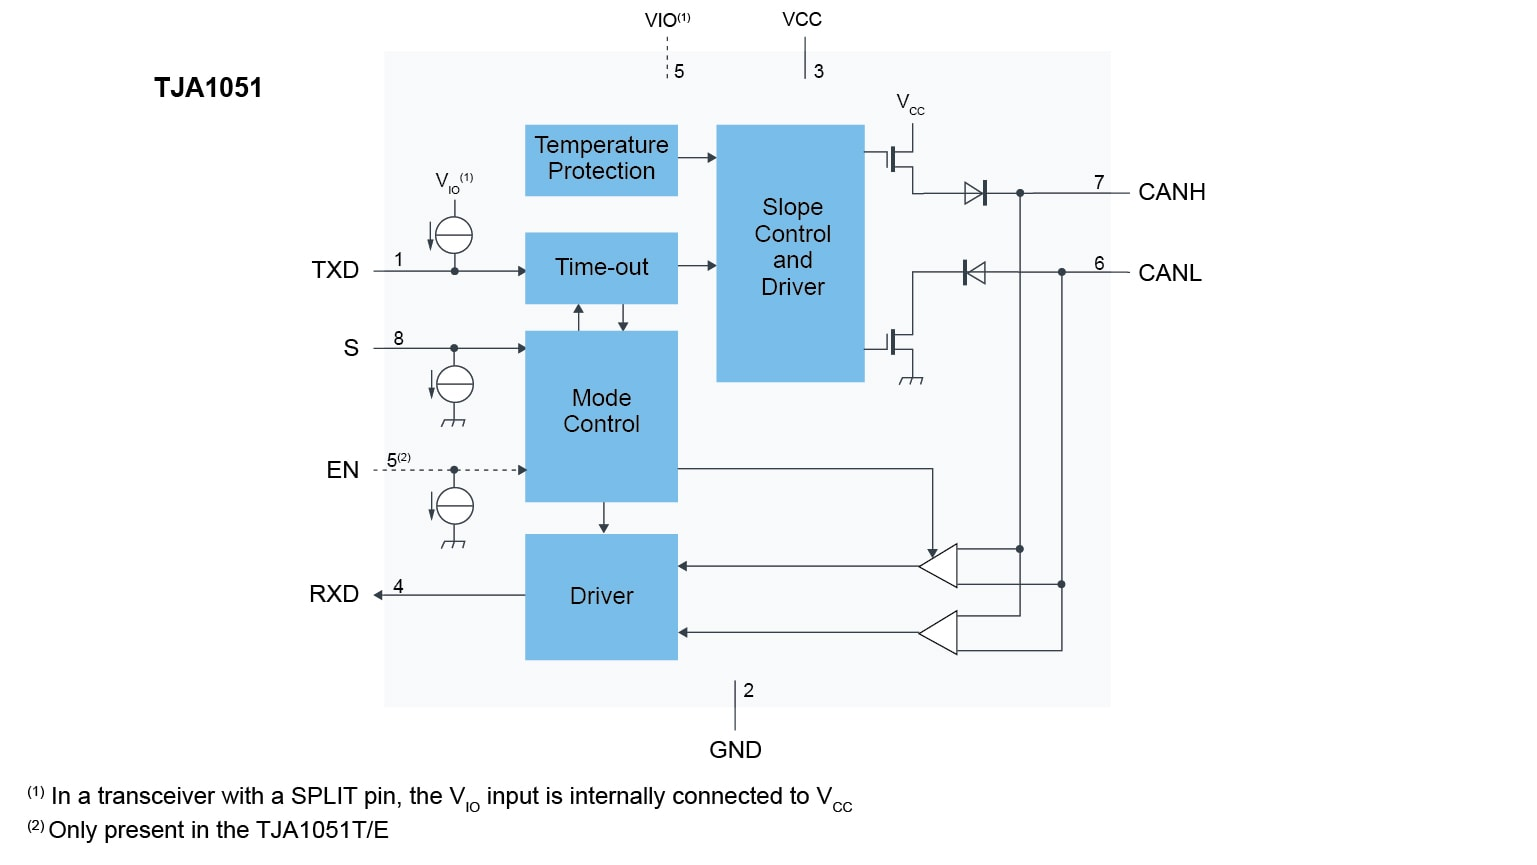 TJA1051 High-speed CAN transceiver block diagram